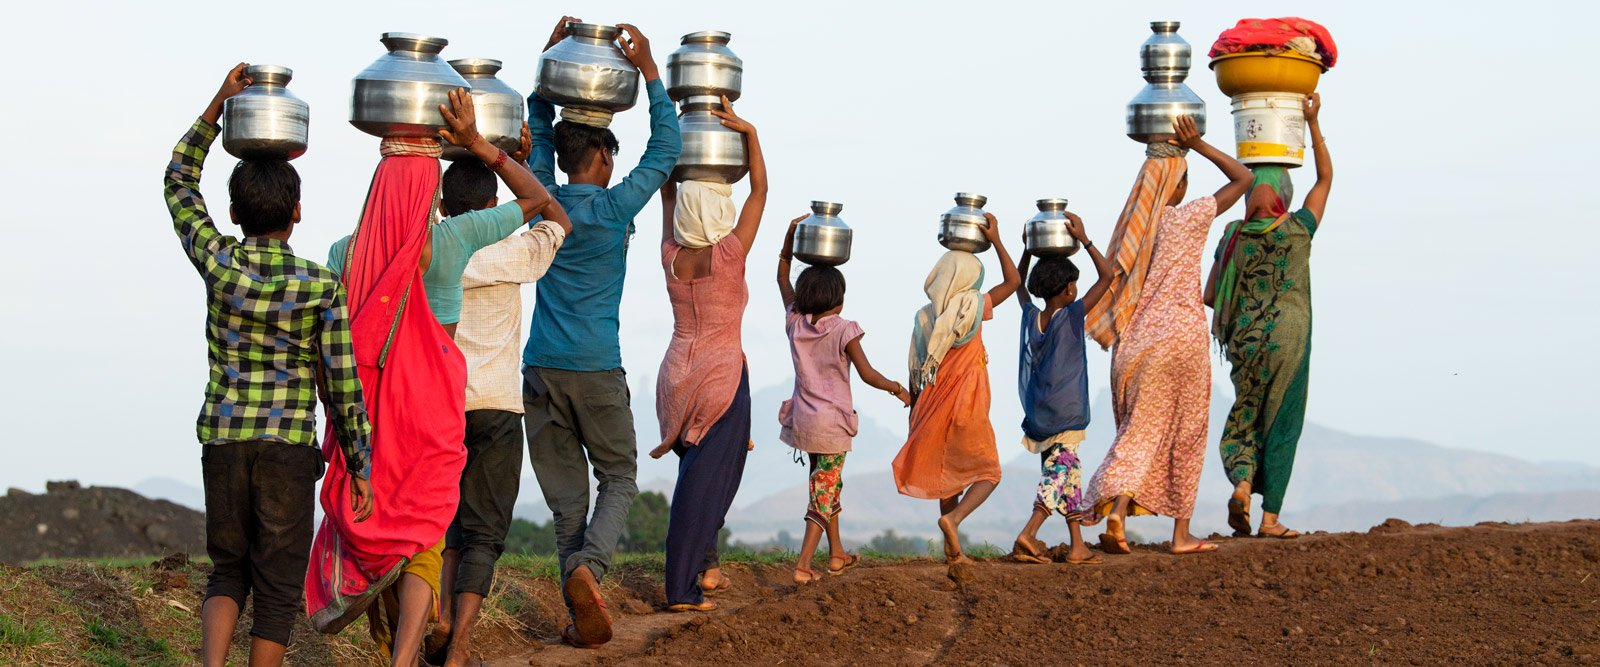 A group of people carry water on their heads in India